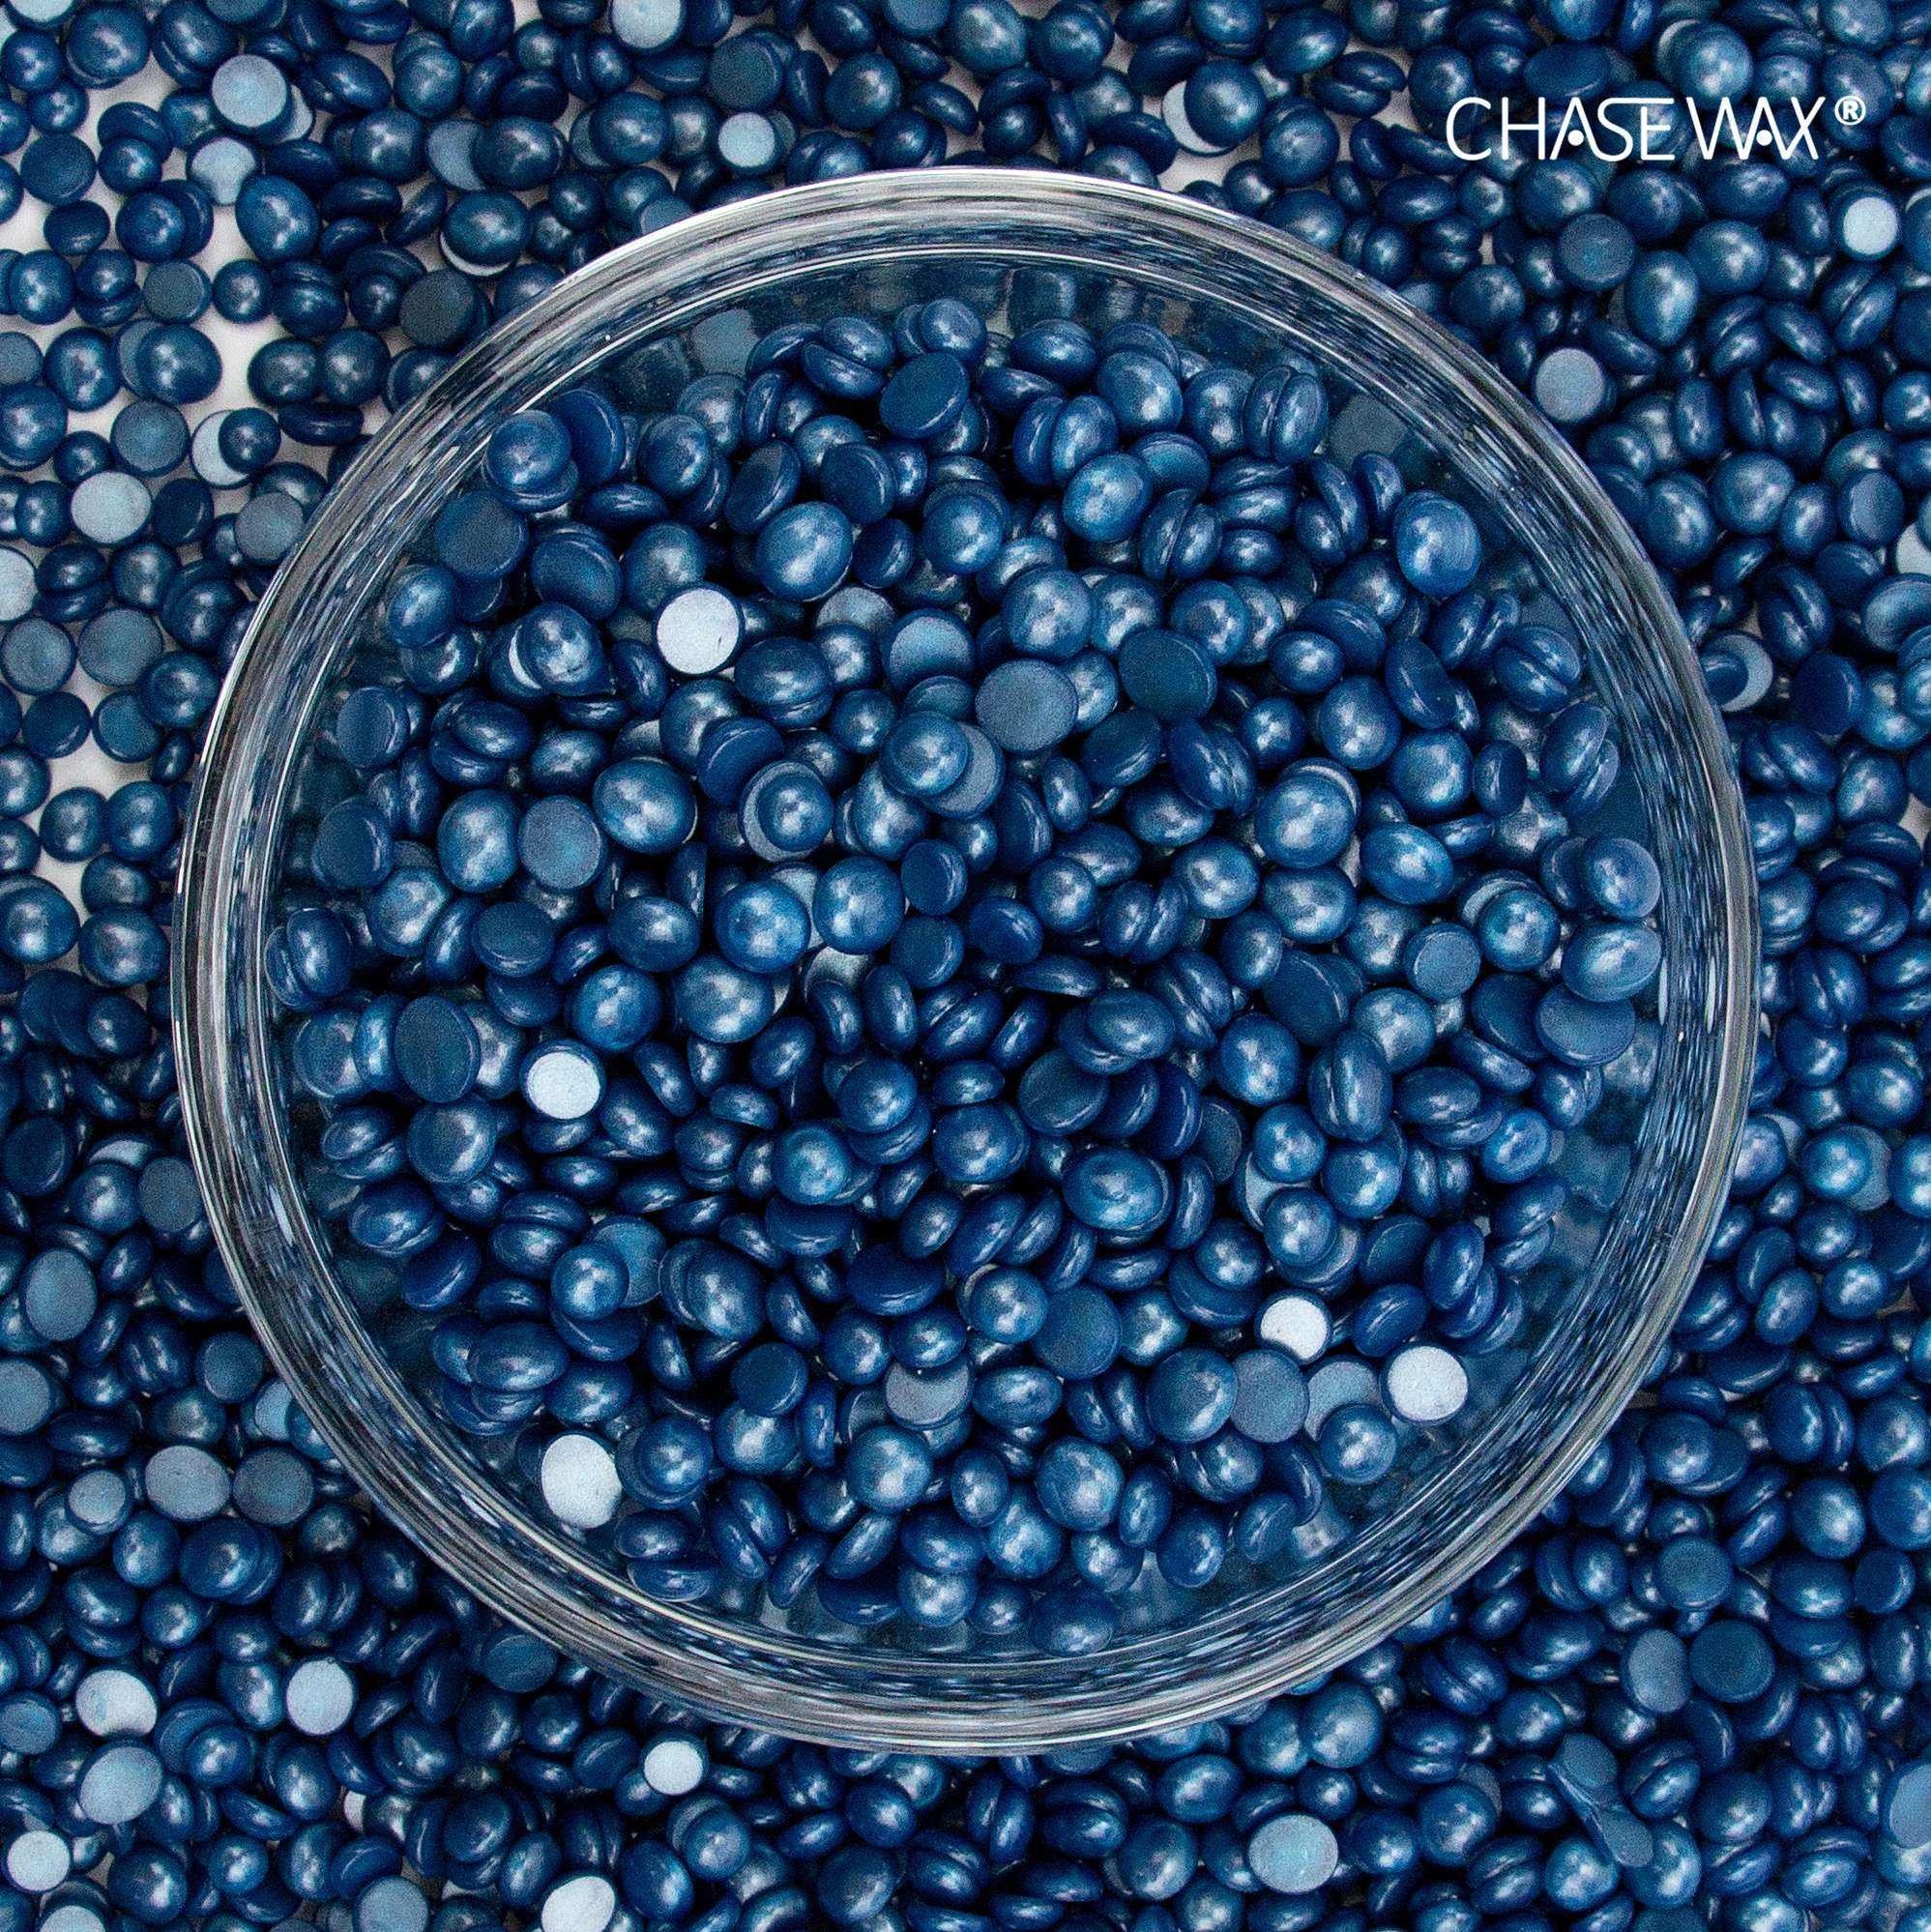 Wholesale 500g Shimmering Blue Hard Wax Beans Hair Removal Bead Depilatory Wax For Full Body Waxing